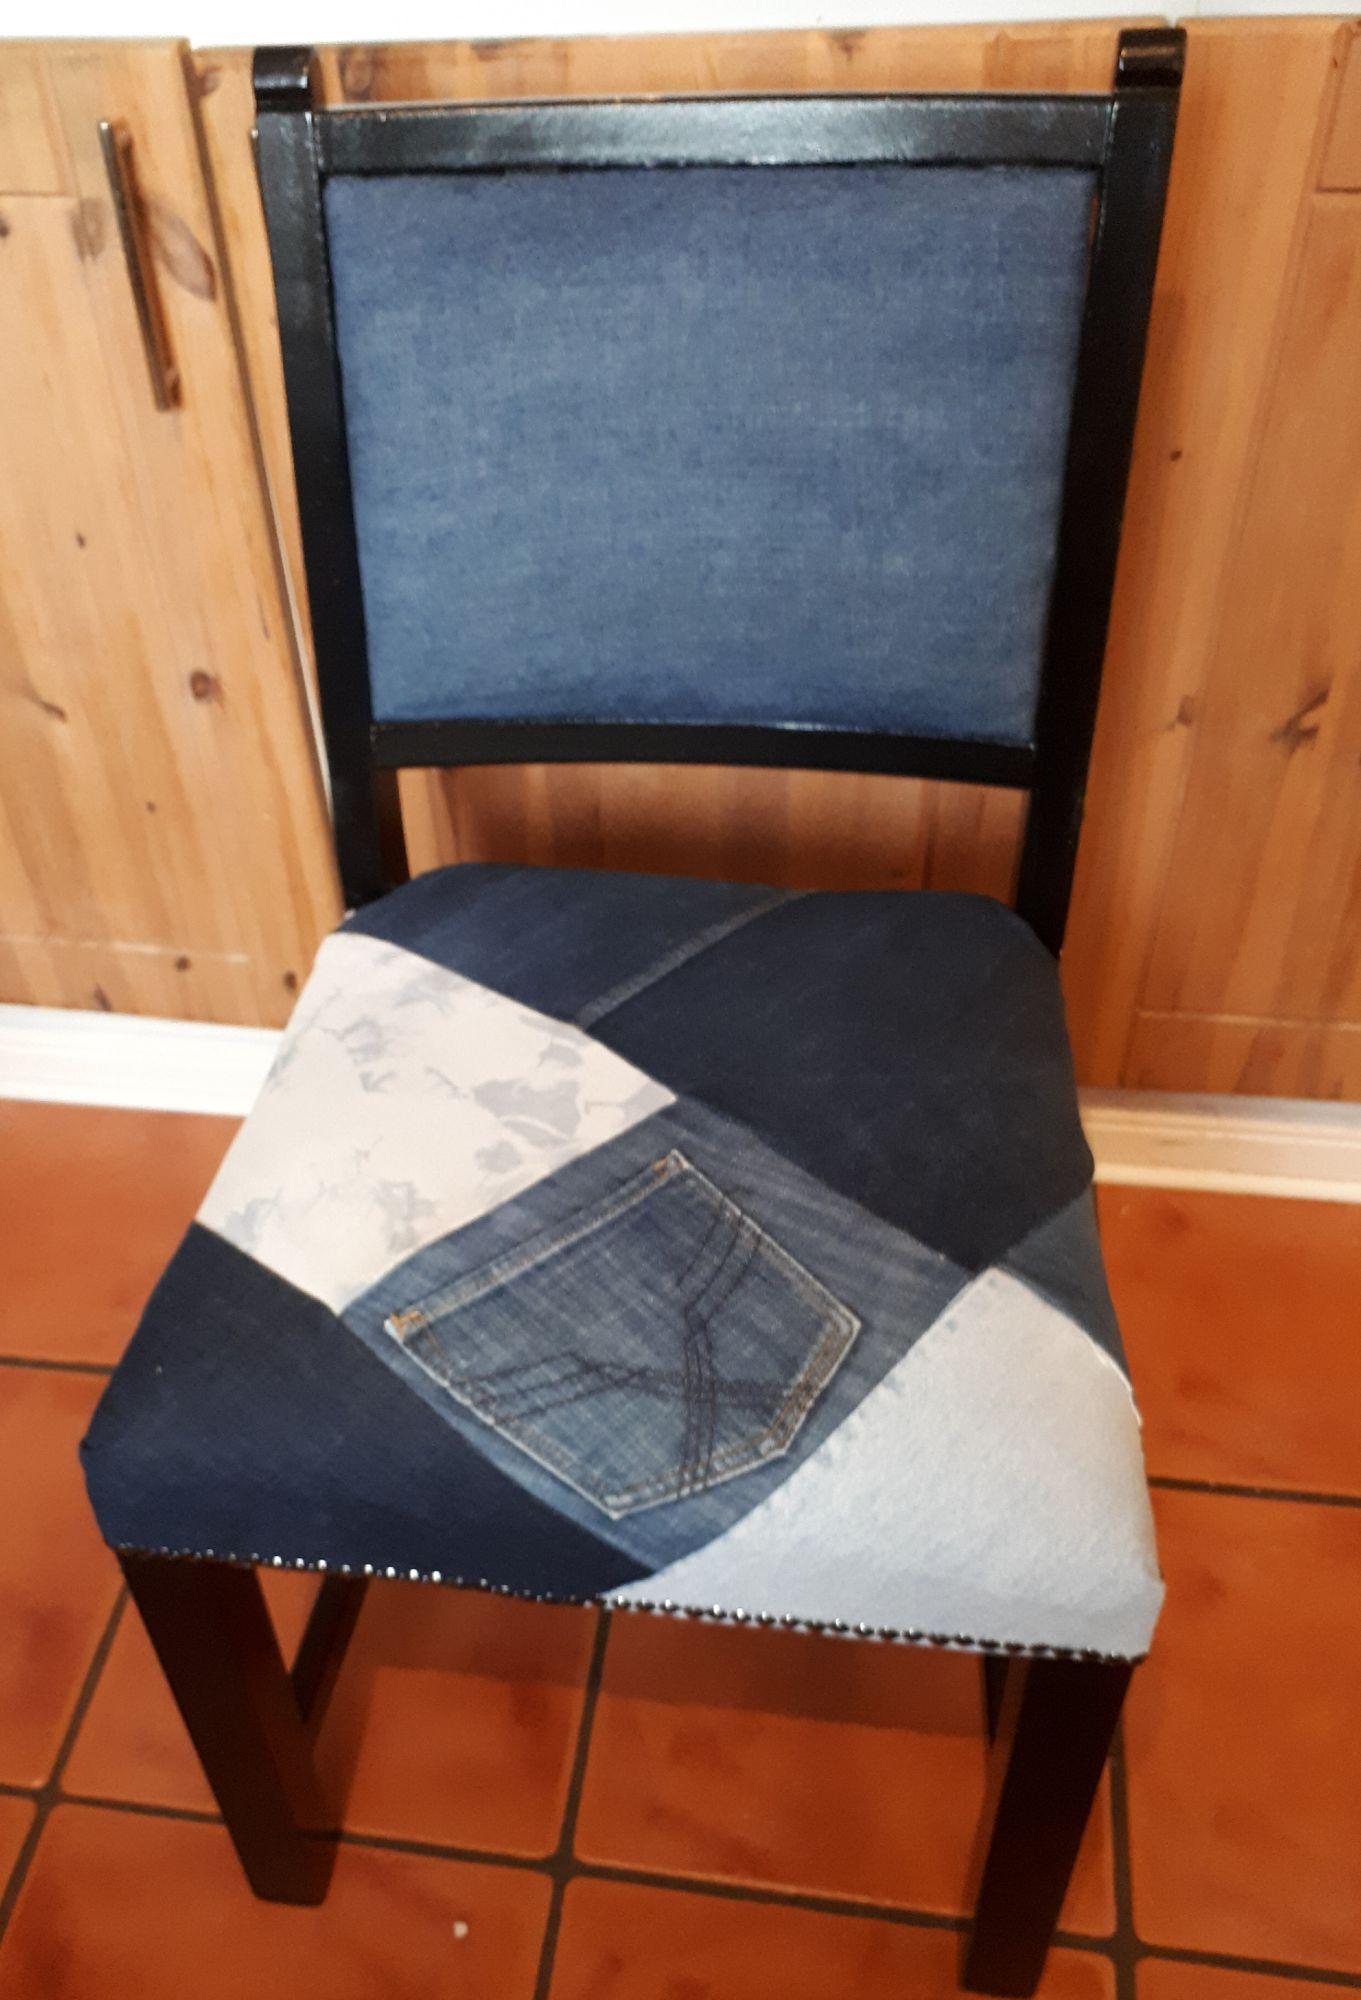 jeans chair1